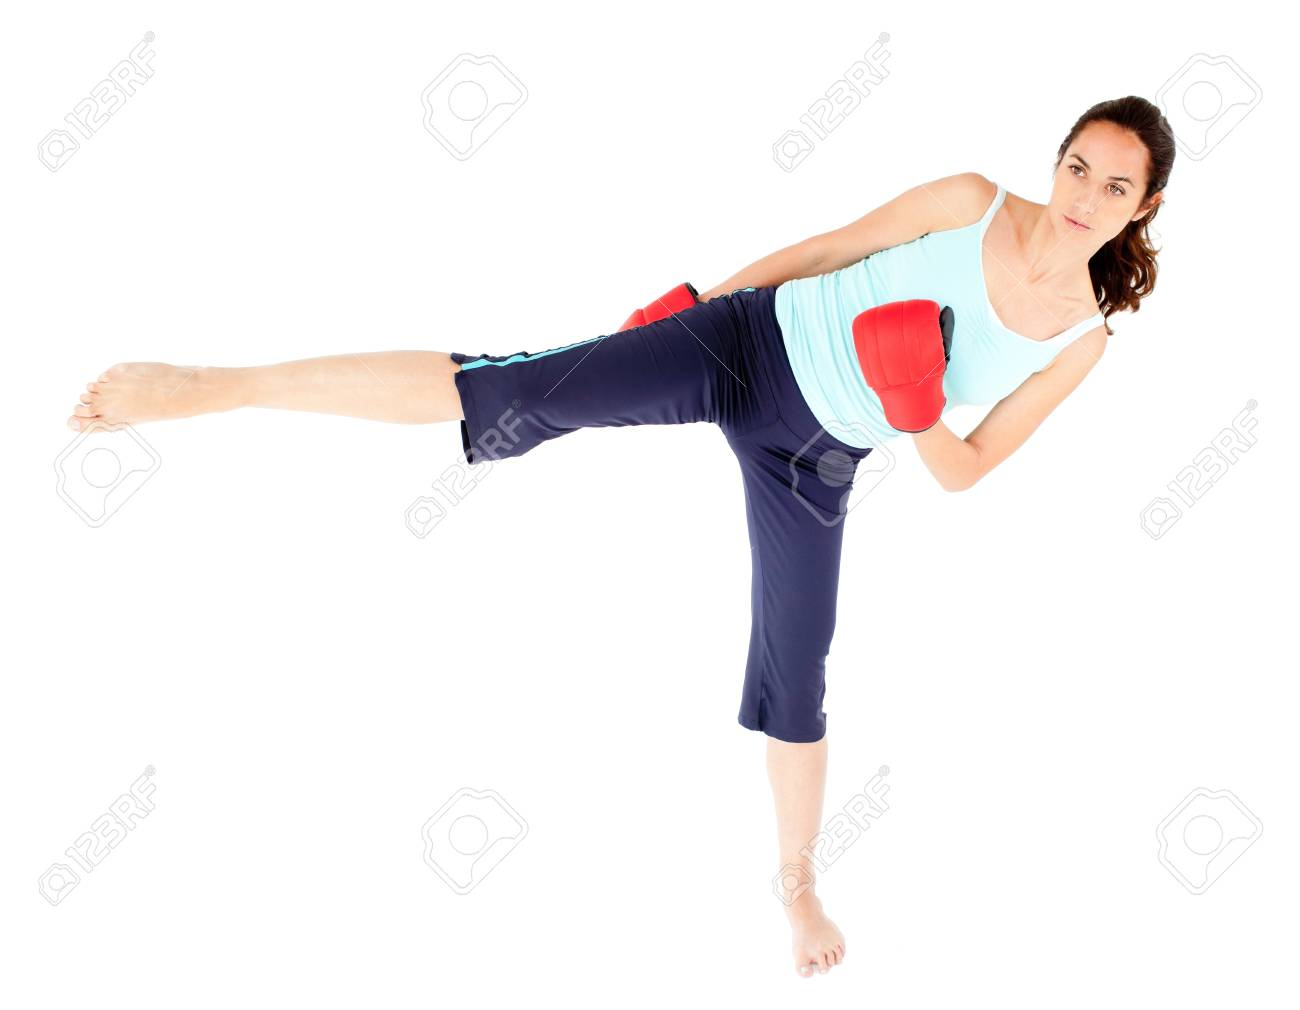 Concentrated woman wearing boxing gloves giving a kick Stock Photo - 10134987